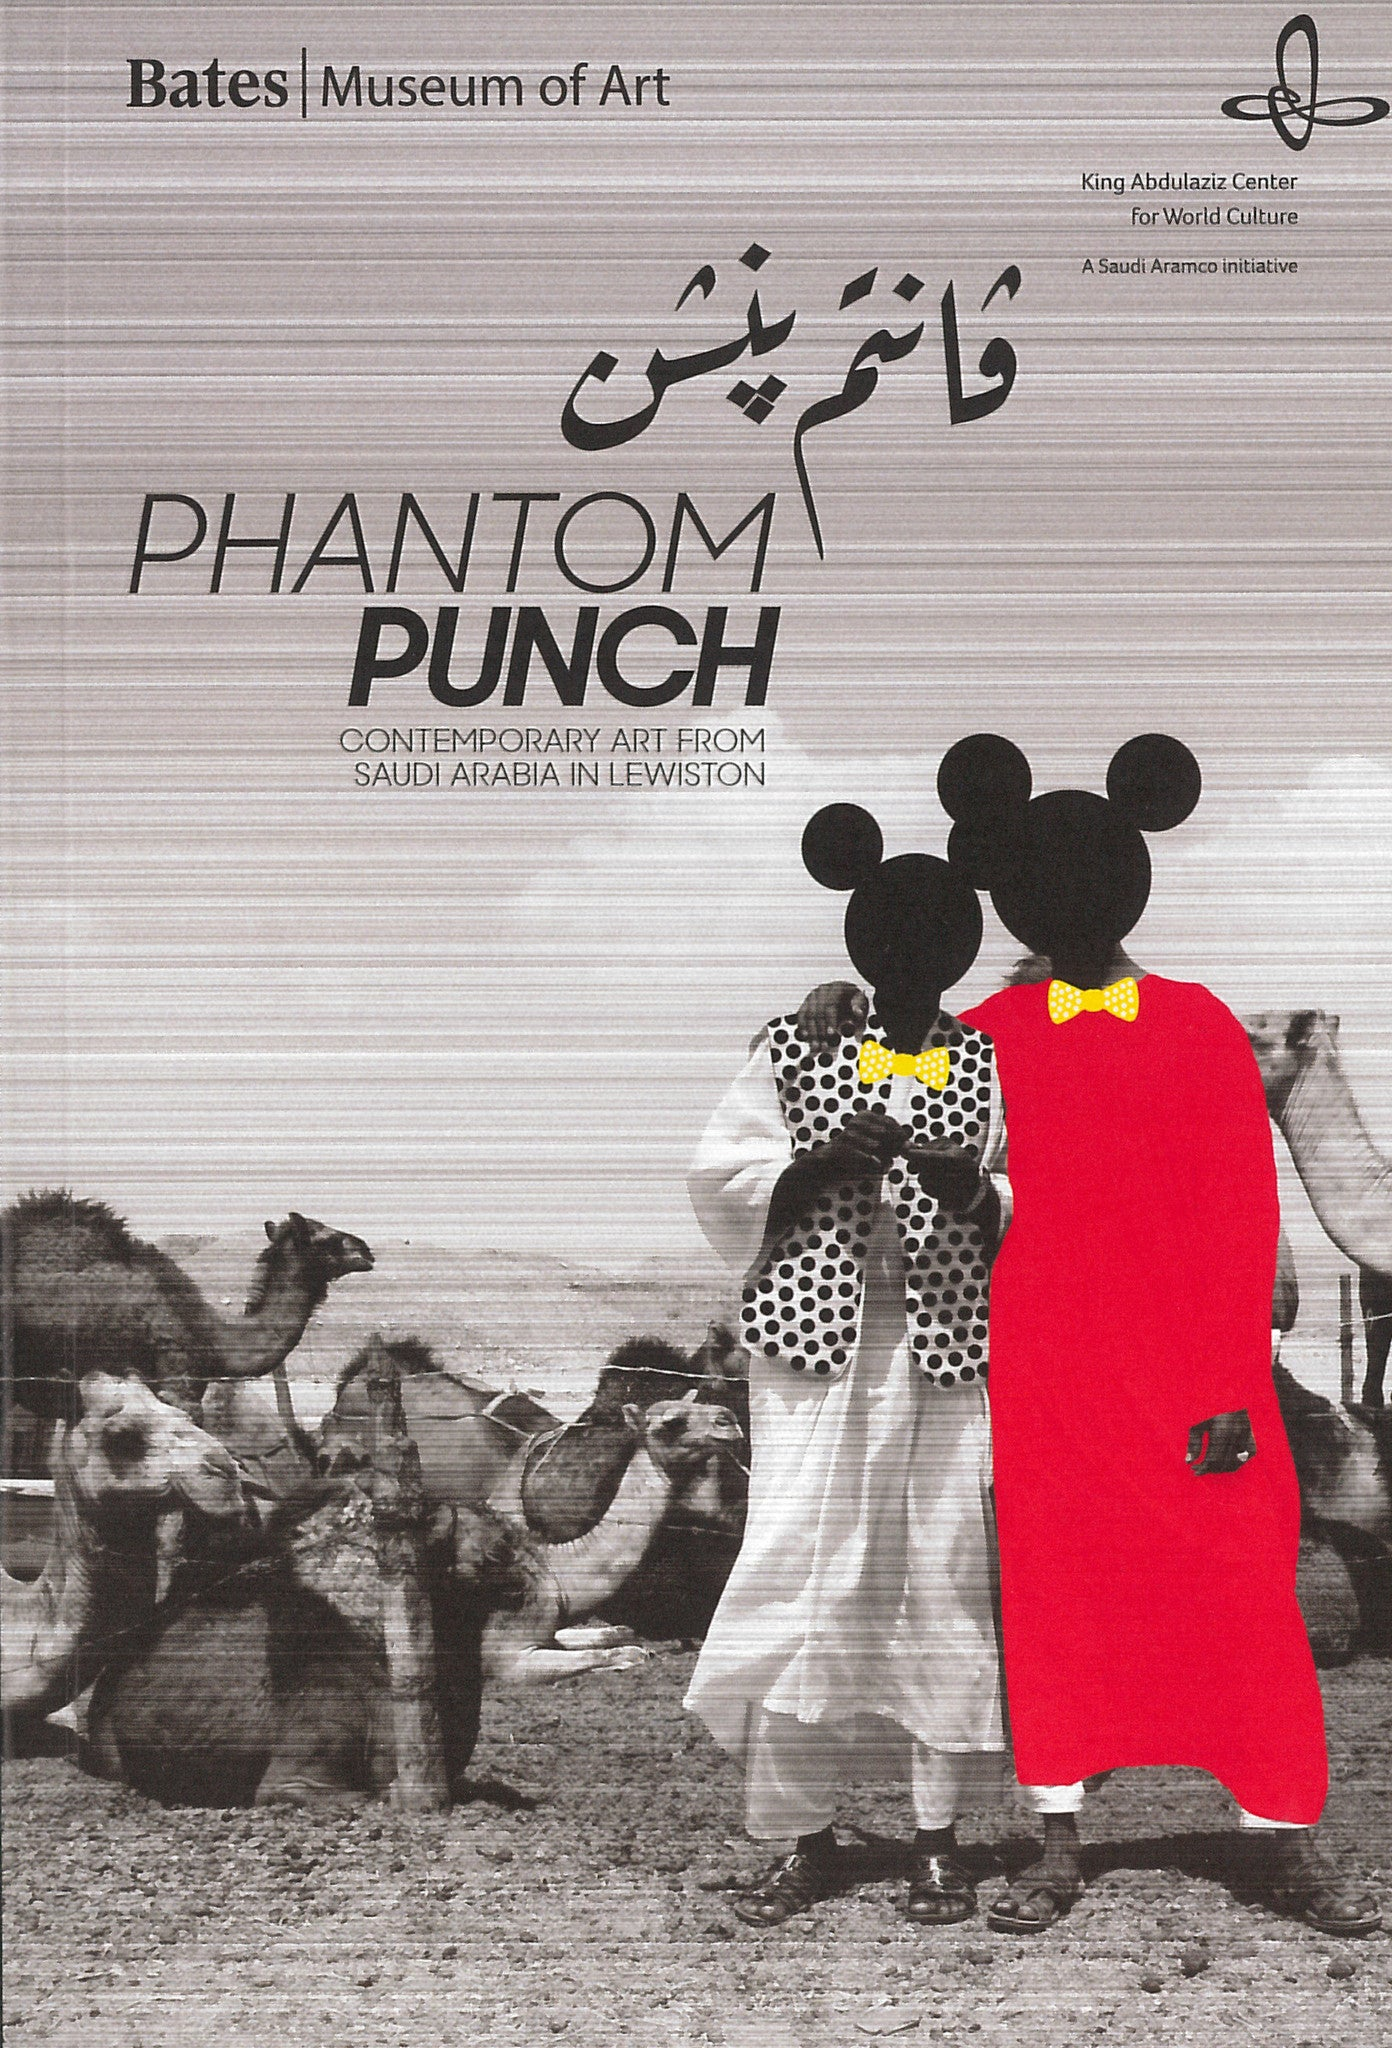 Phantom Punch: Contemporary Art from Saudi Arabia in Lewiston - Books, Museum Publications